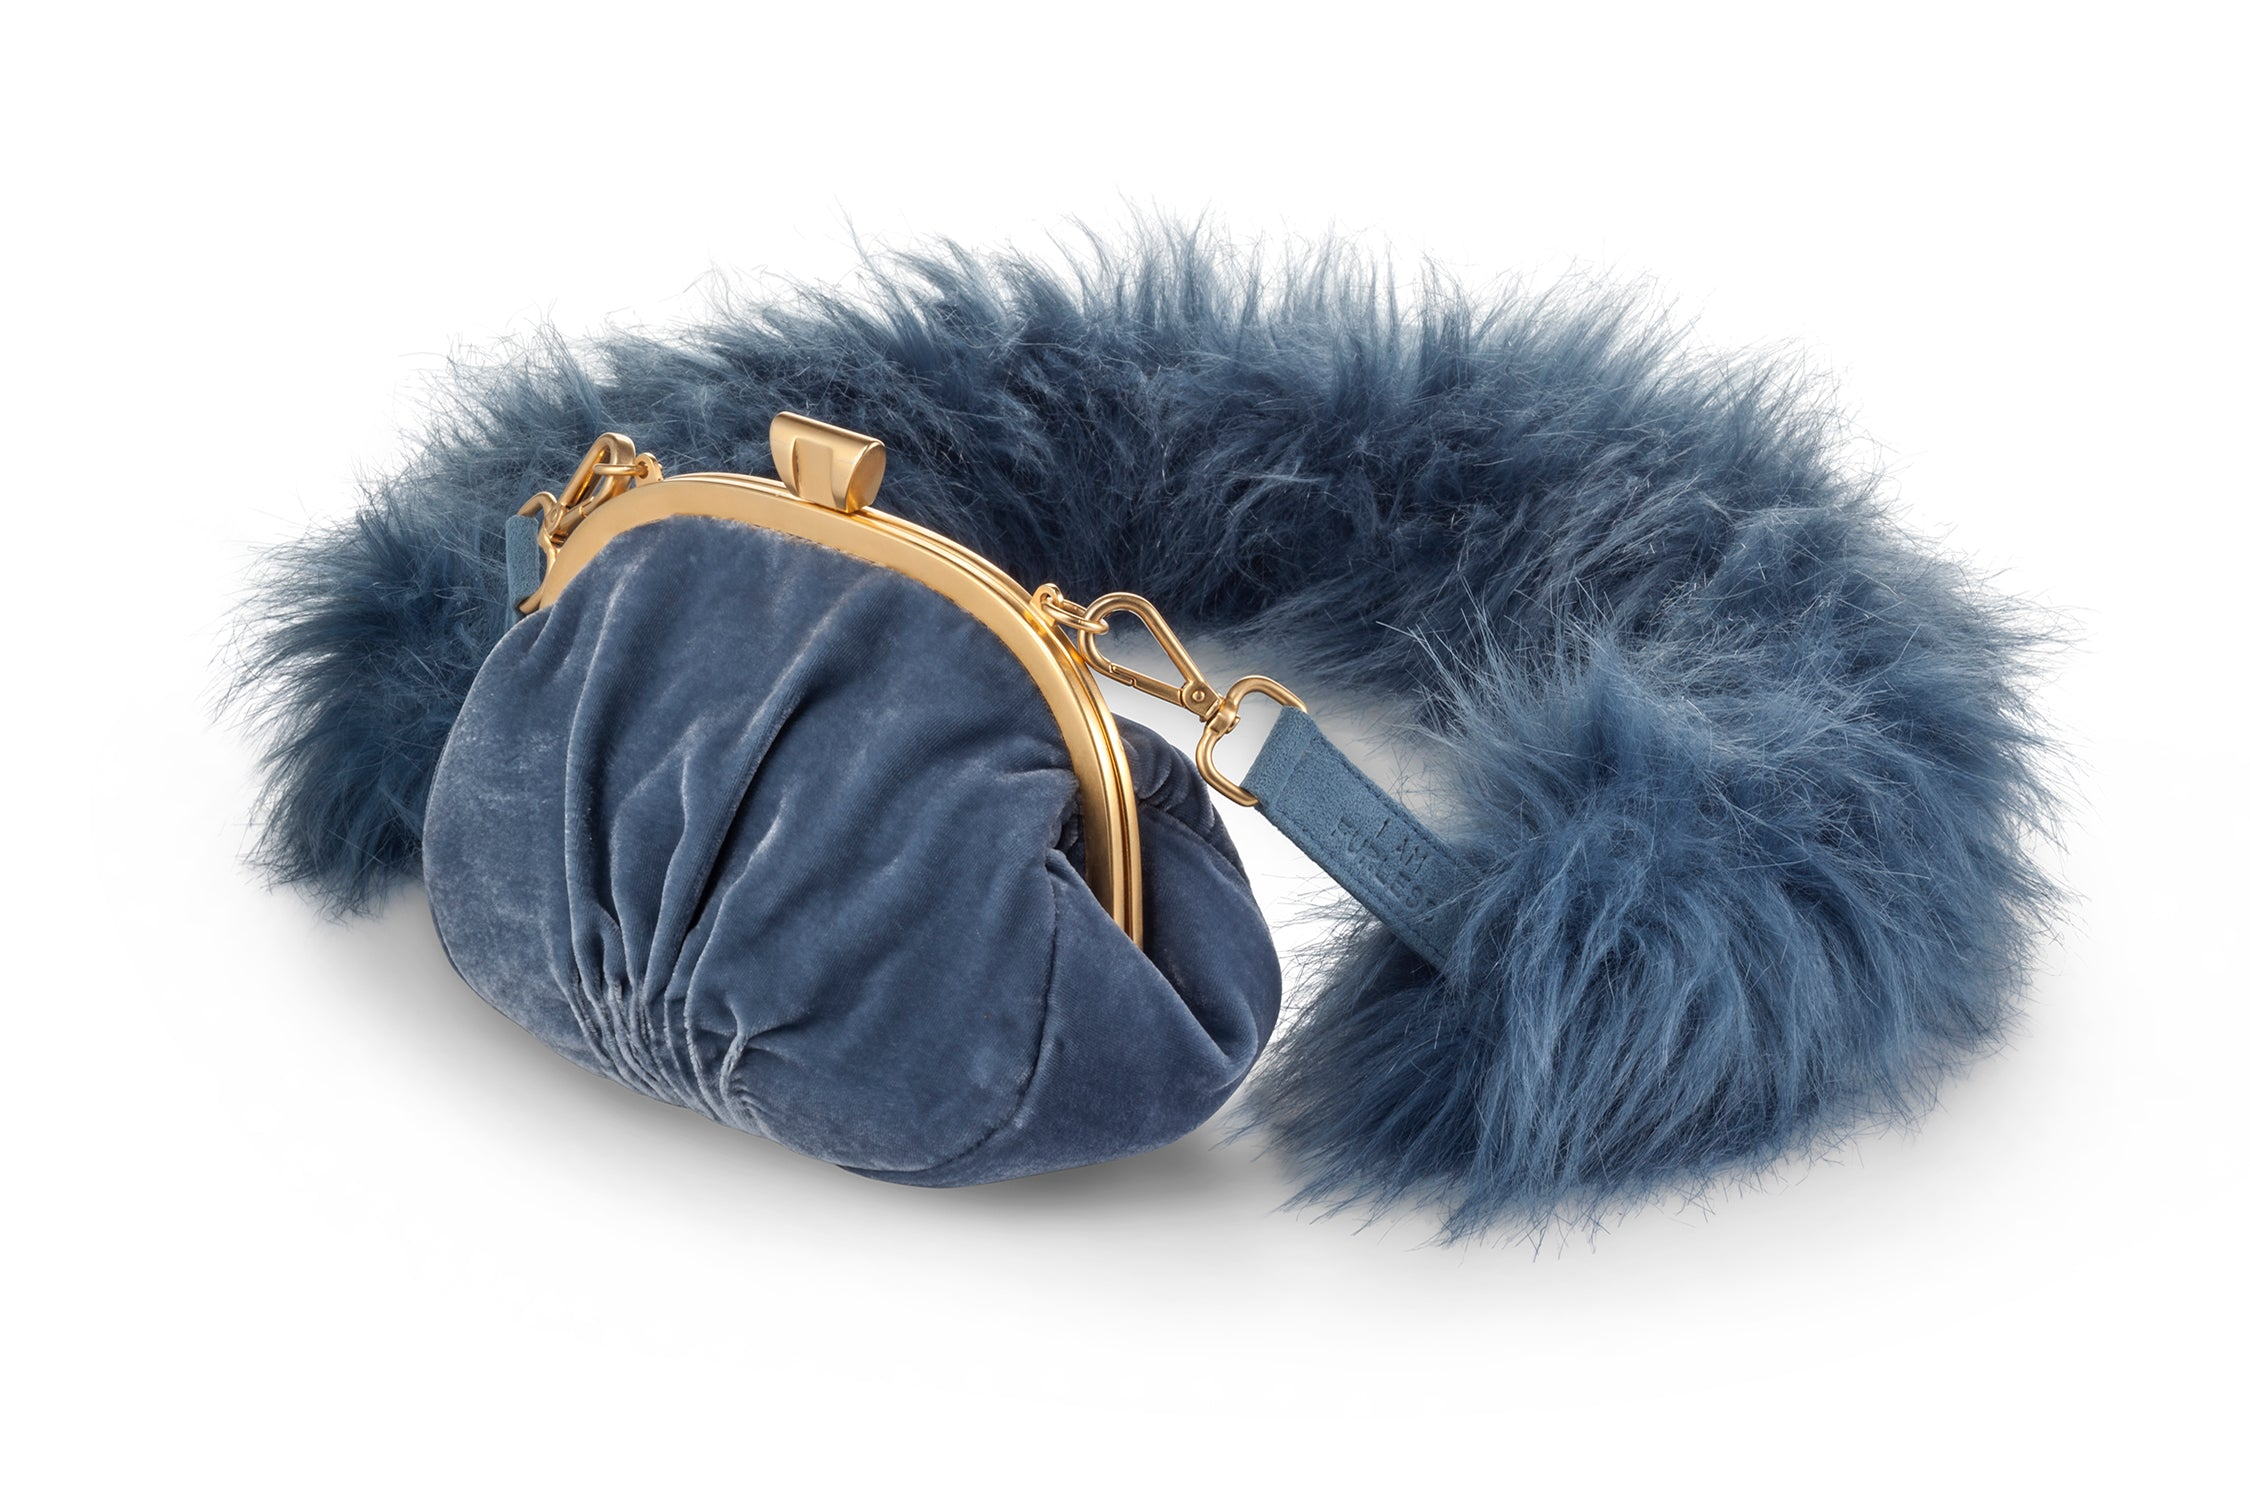 A Packshot Of Marei1998's Forget Me Not Velvet Purse In Light Blue Color. Made From Lustrous Velvet And Topped With Gold Plated Brass Clasp For Smooth Closure. The Puffy Silhouette In Light Blue Color Is Accentuated By A Lush Faux Fur Strap, Creating A Contemporary Vintage Look. Side View.